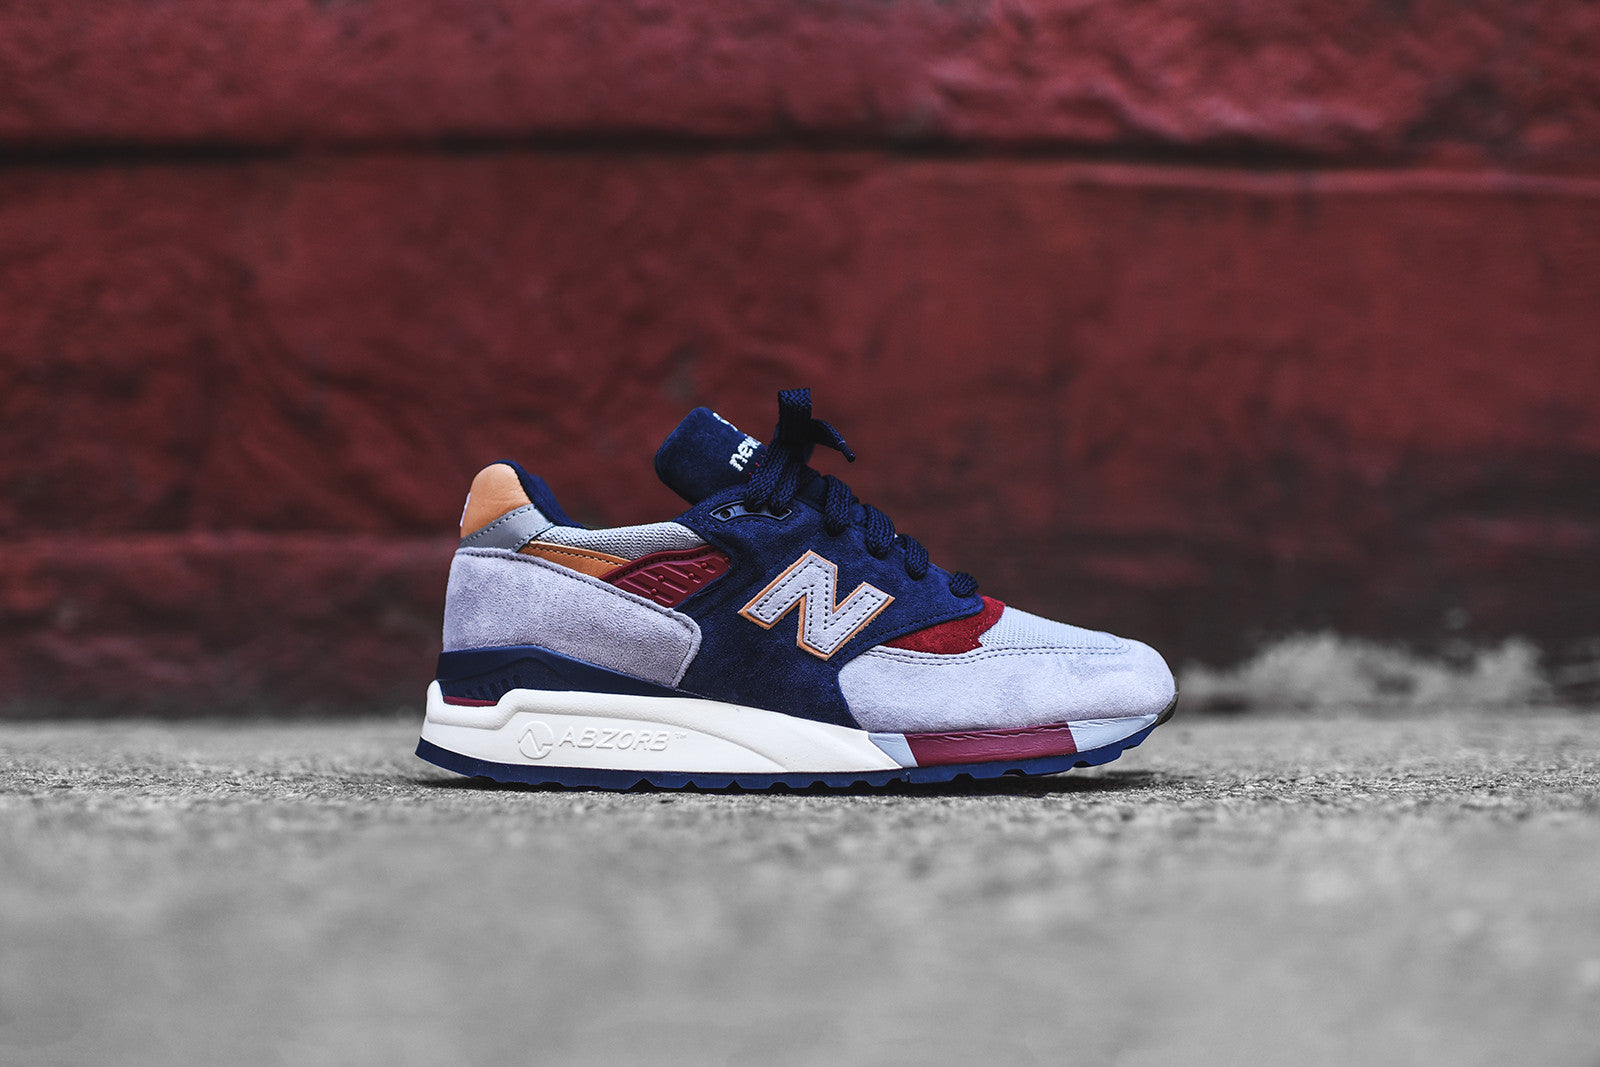 new product 0a89c 16e26 New Balance Summer '17, Delivery 1 – Kith